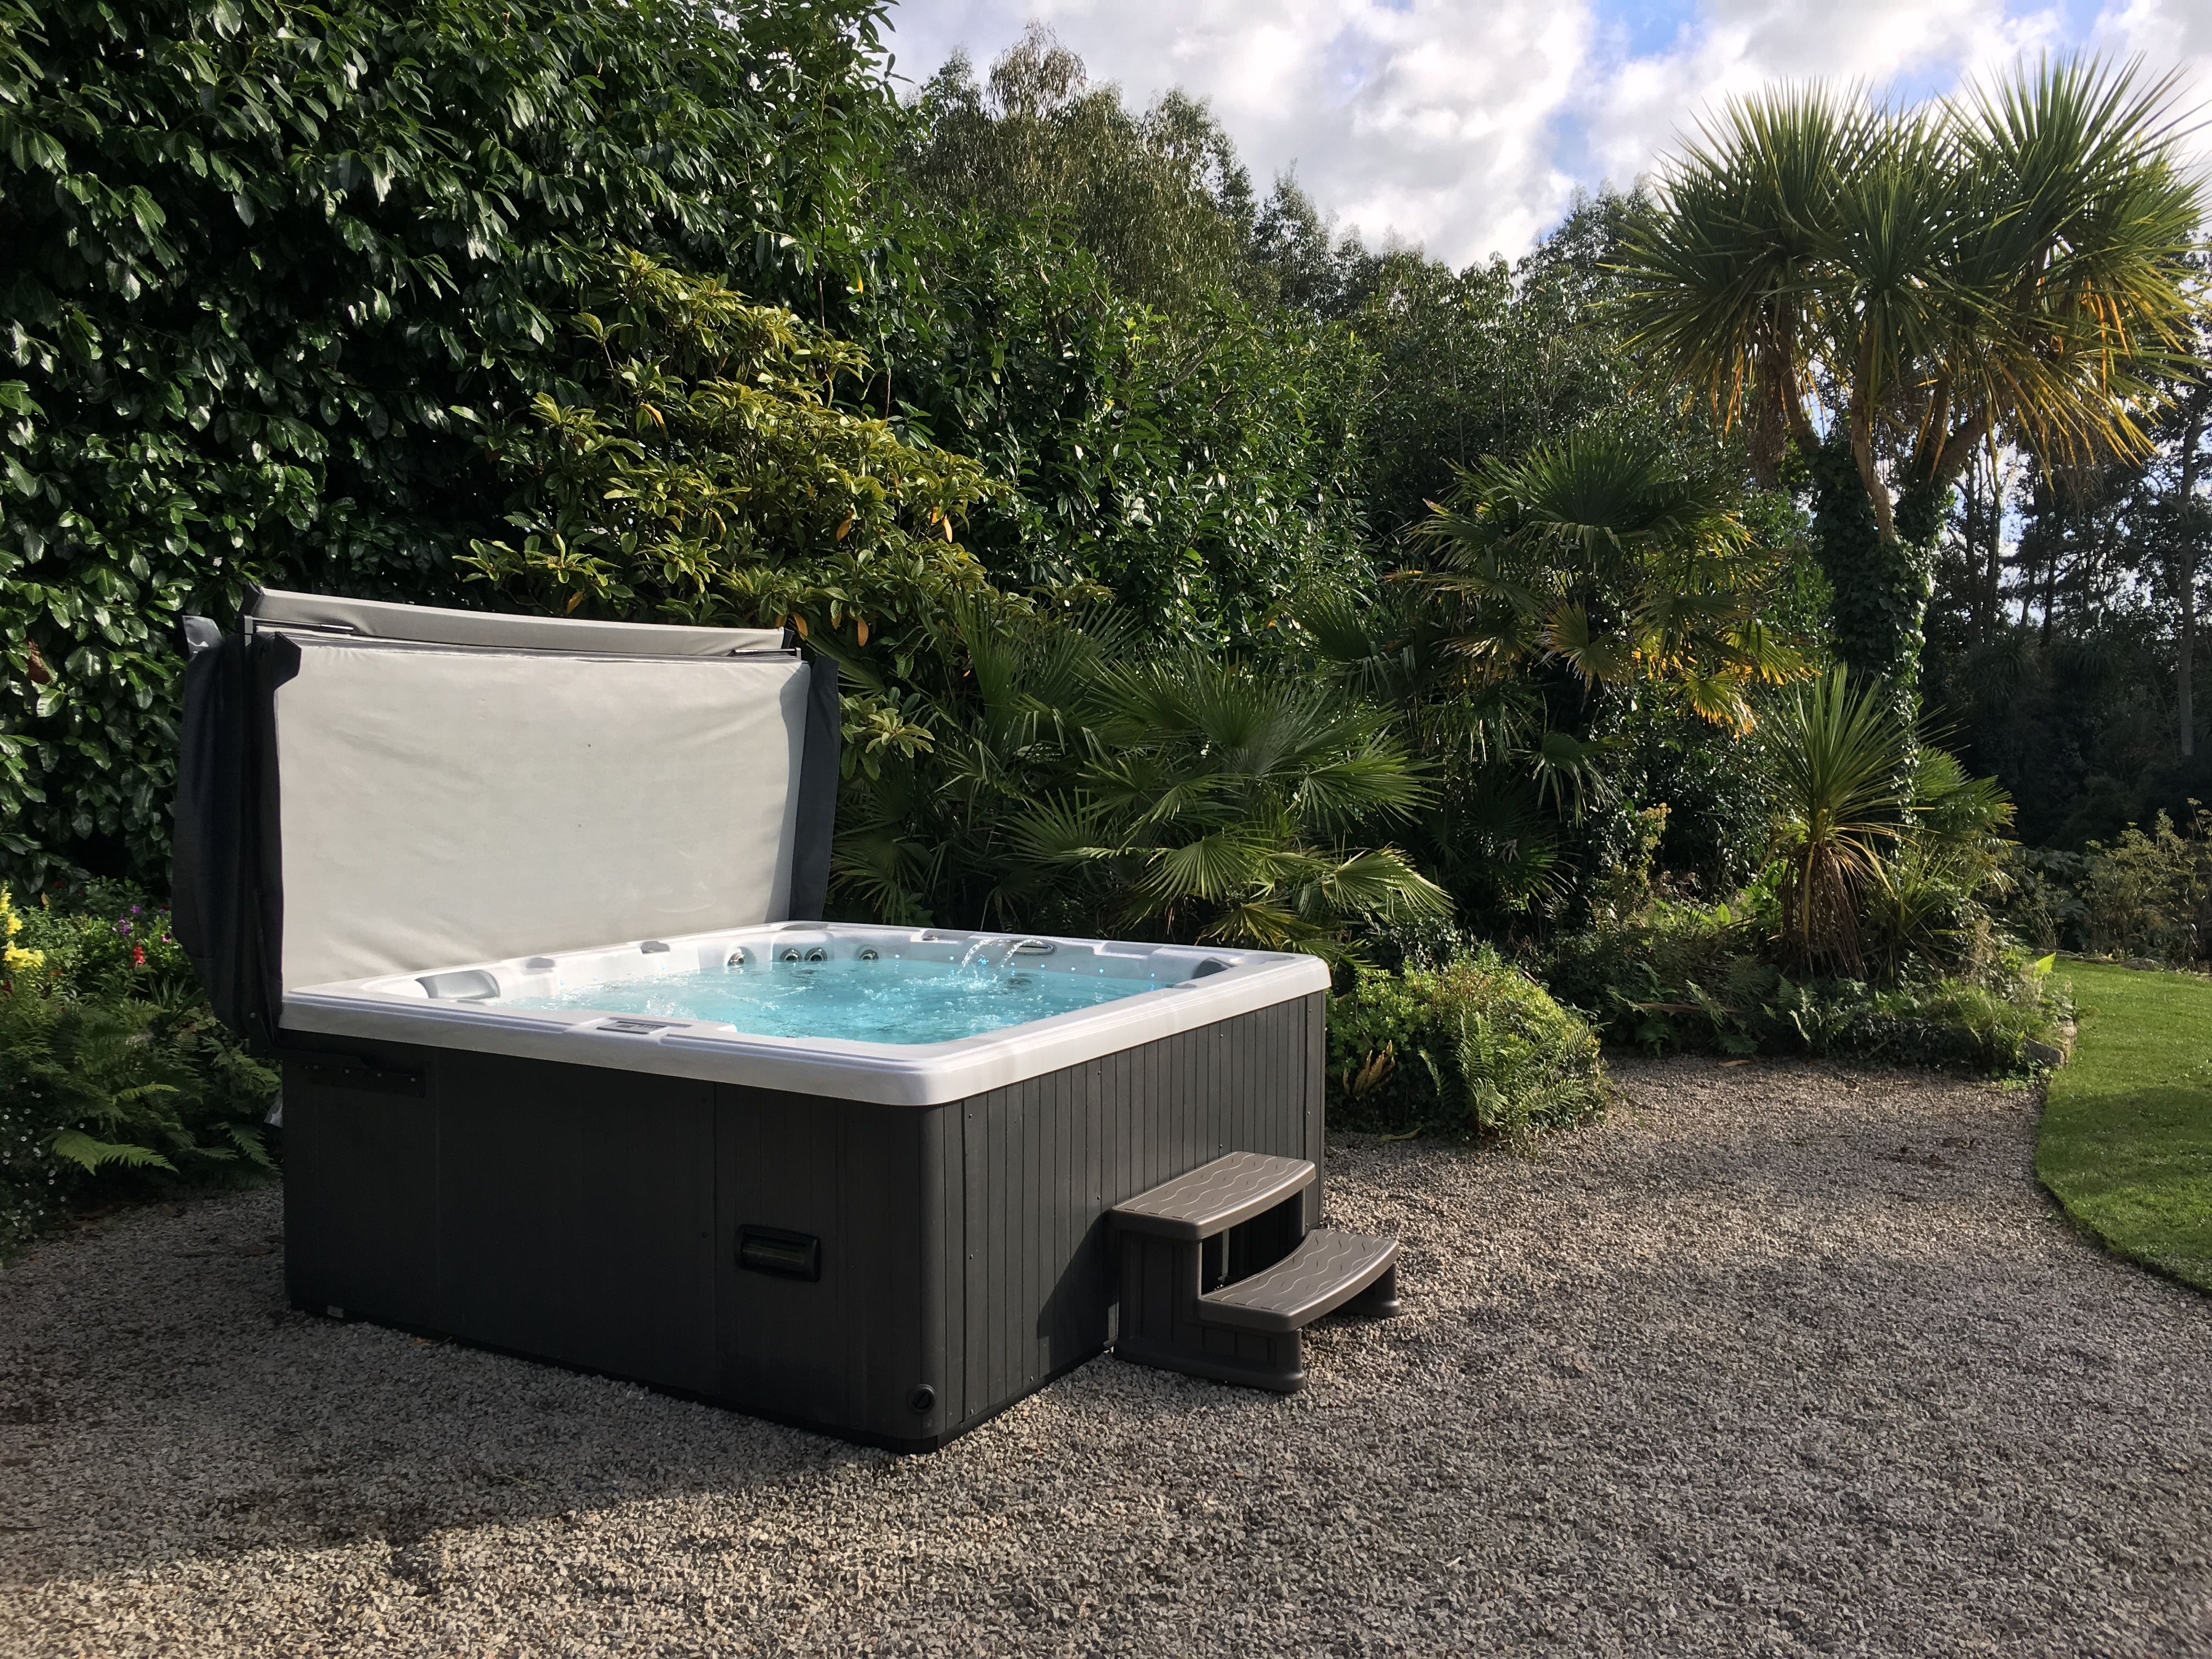 Jacuzzi Pool Equipment Webster Pools Spas The Best Swimming Pool Builders In The Uk